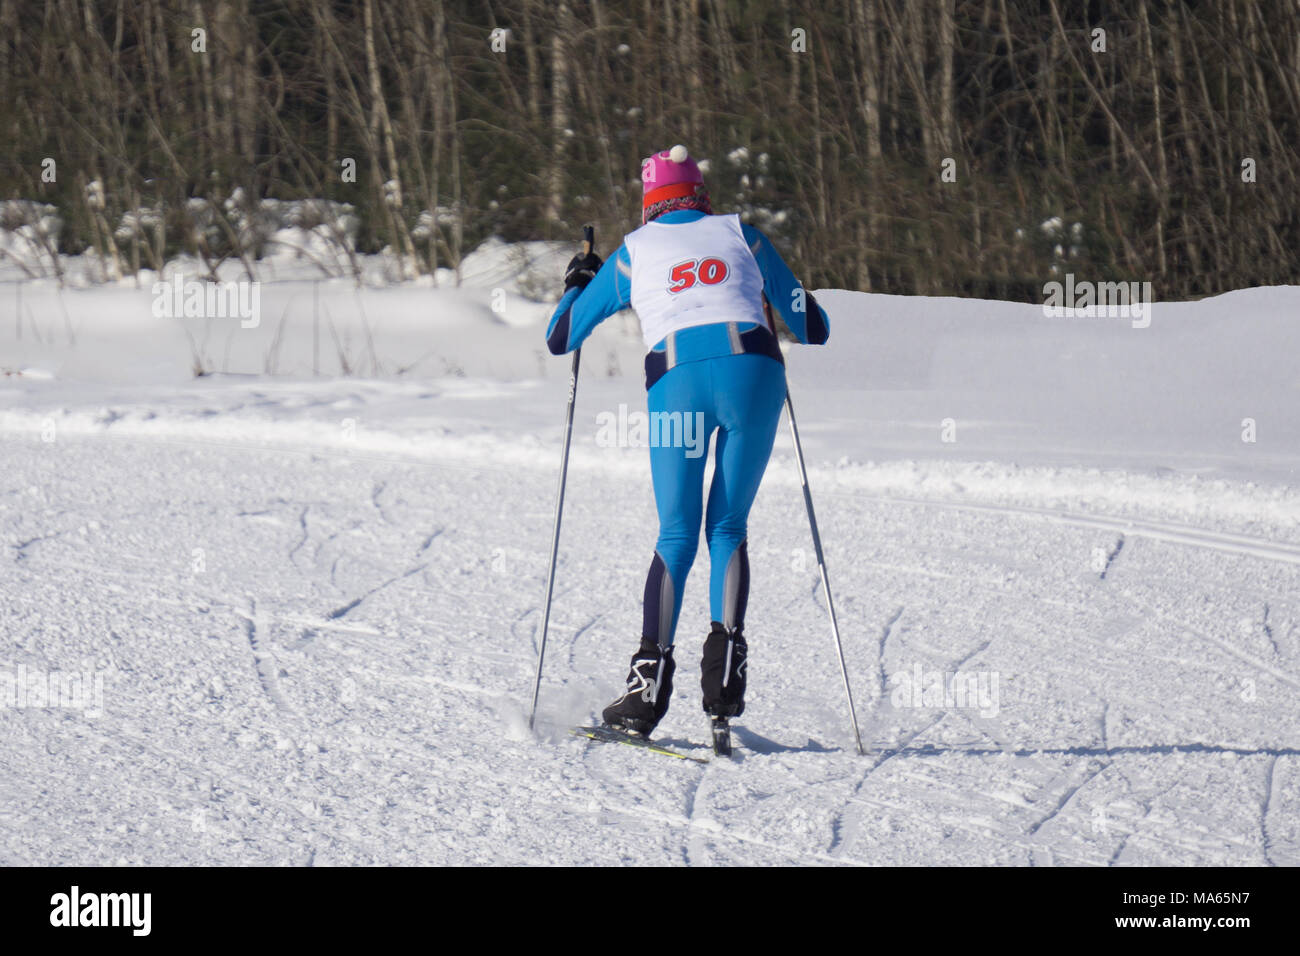 large Competitions in skiing runs, the Ski marathon runner - Stock Image